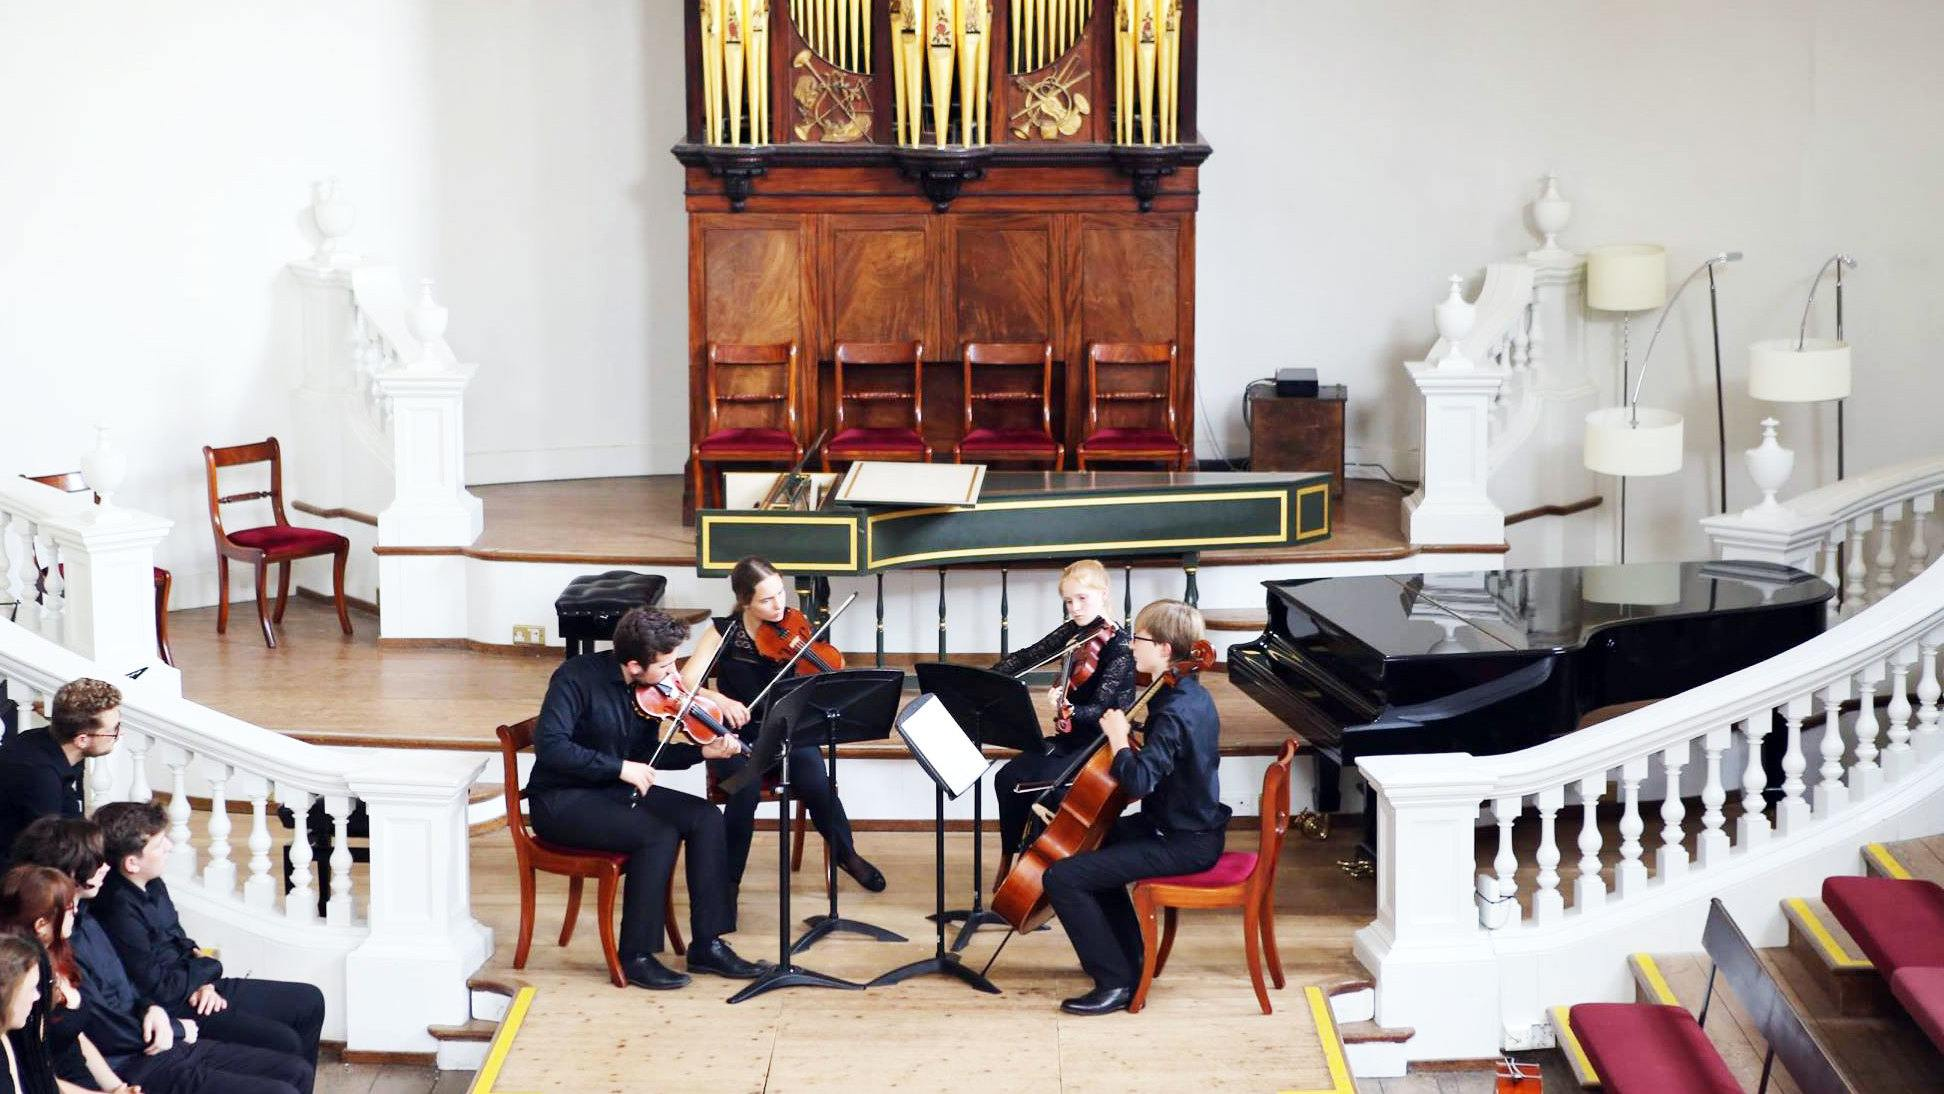 Ingenium Academy Chamber Music concert at the Holywell Music Room, Oxford